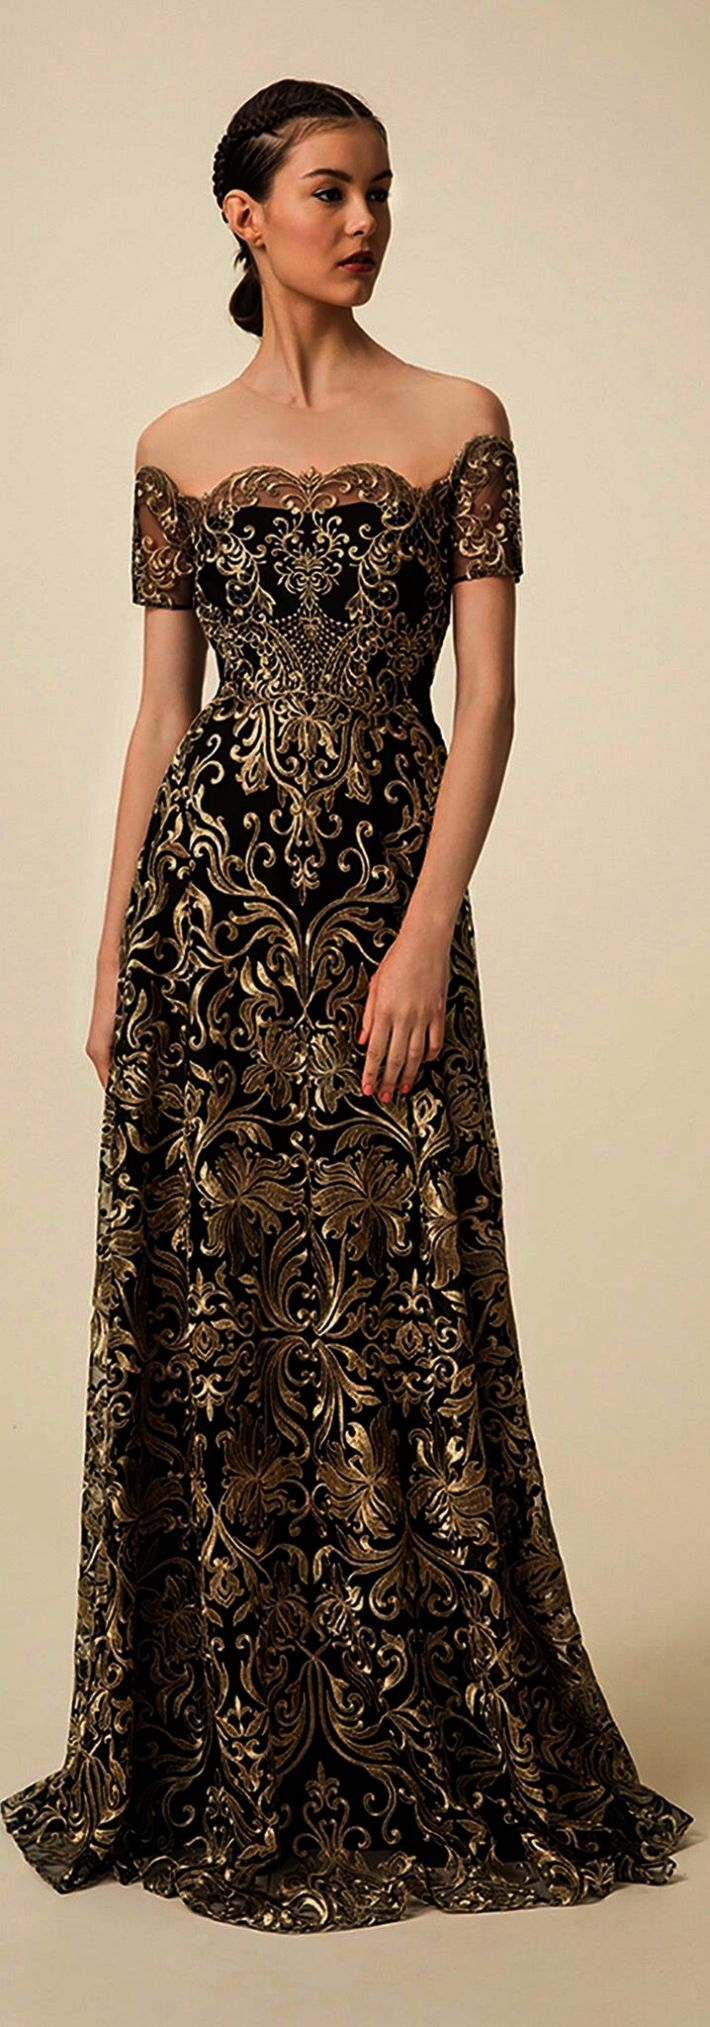 Outstanding - Evening Gowns On Sale Designer #view | Wow | Pinterest ...